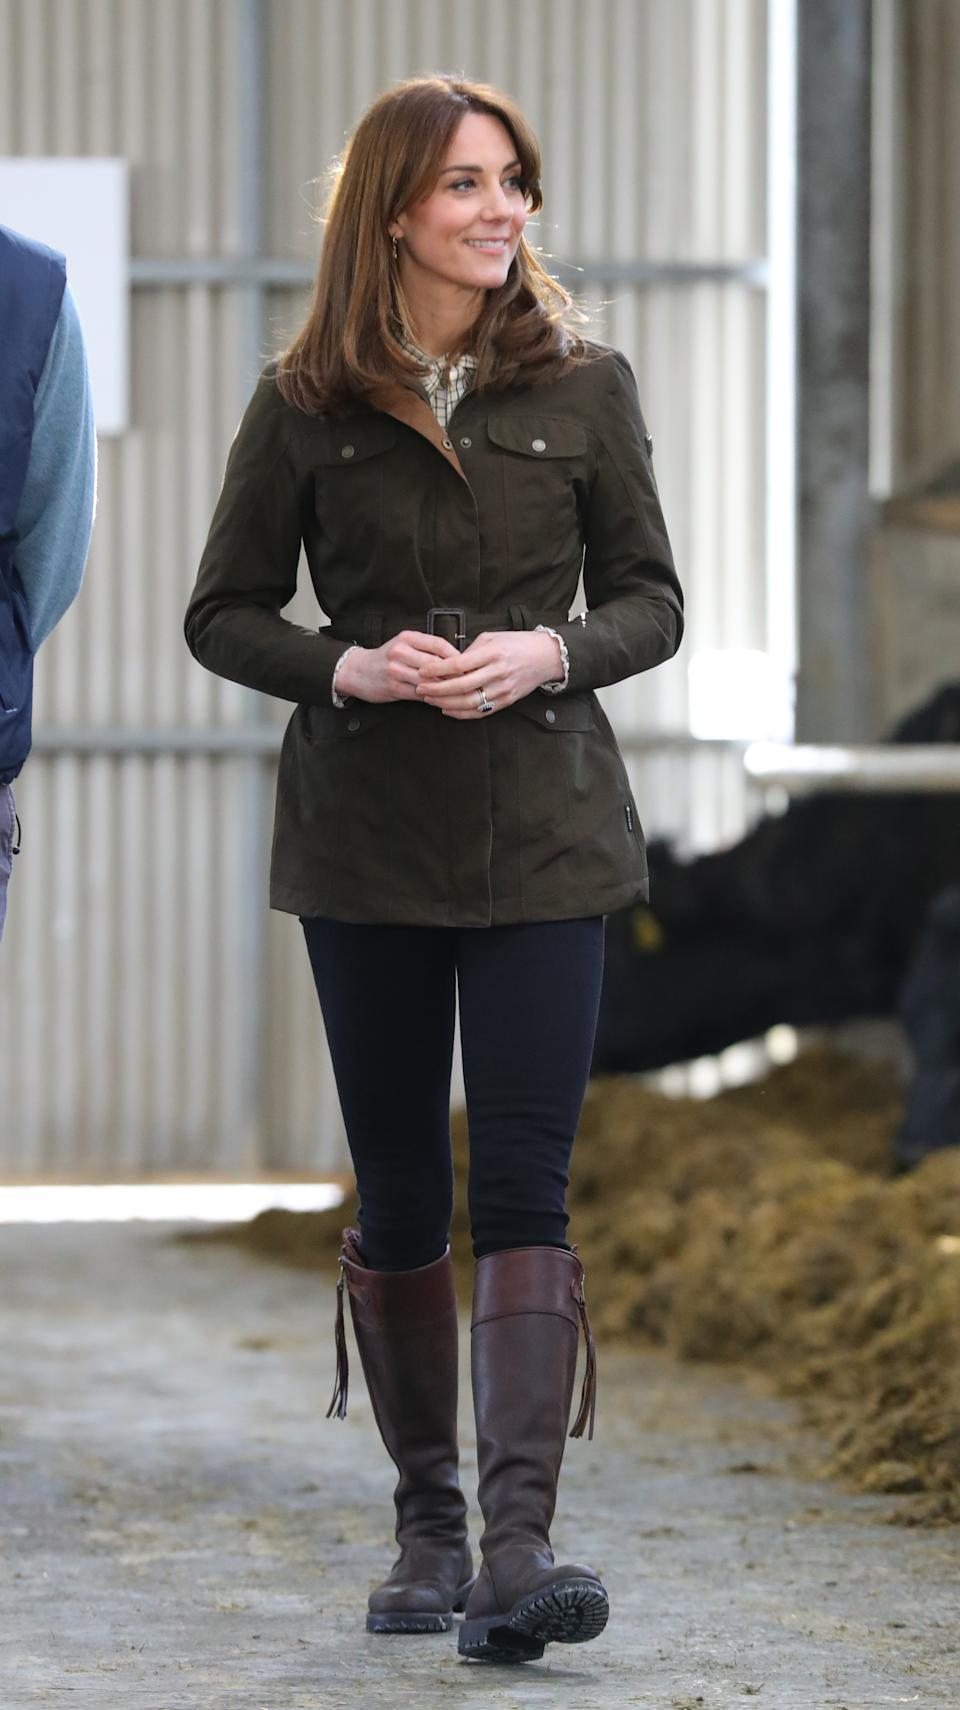 The Duchess of Cambridge visited the Teagasc Animal & Grassland Research Centre on Wednesday. (PA Images)